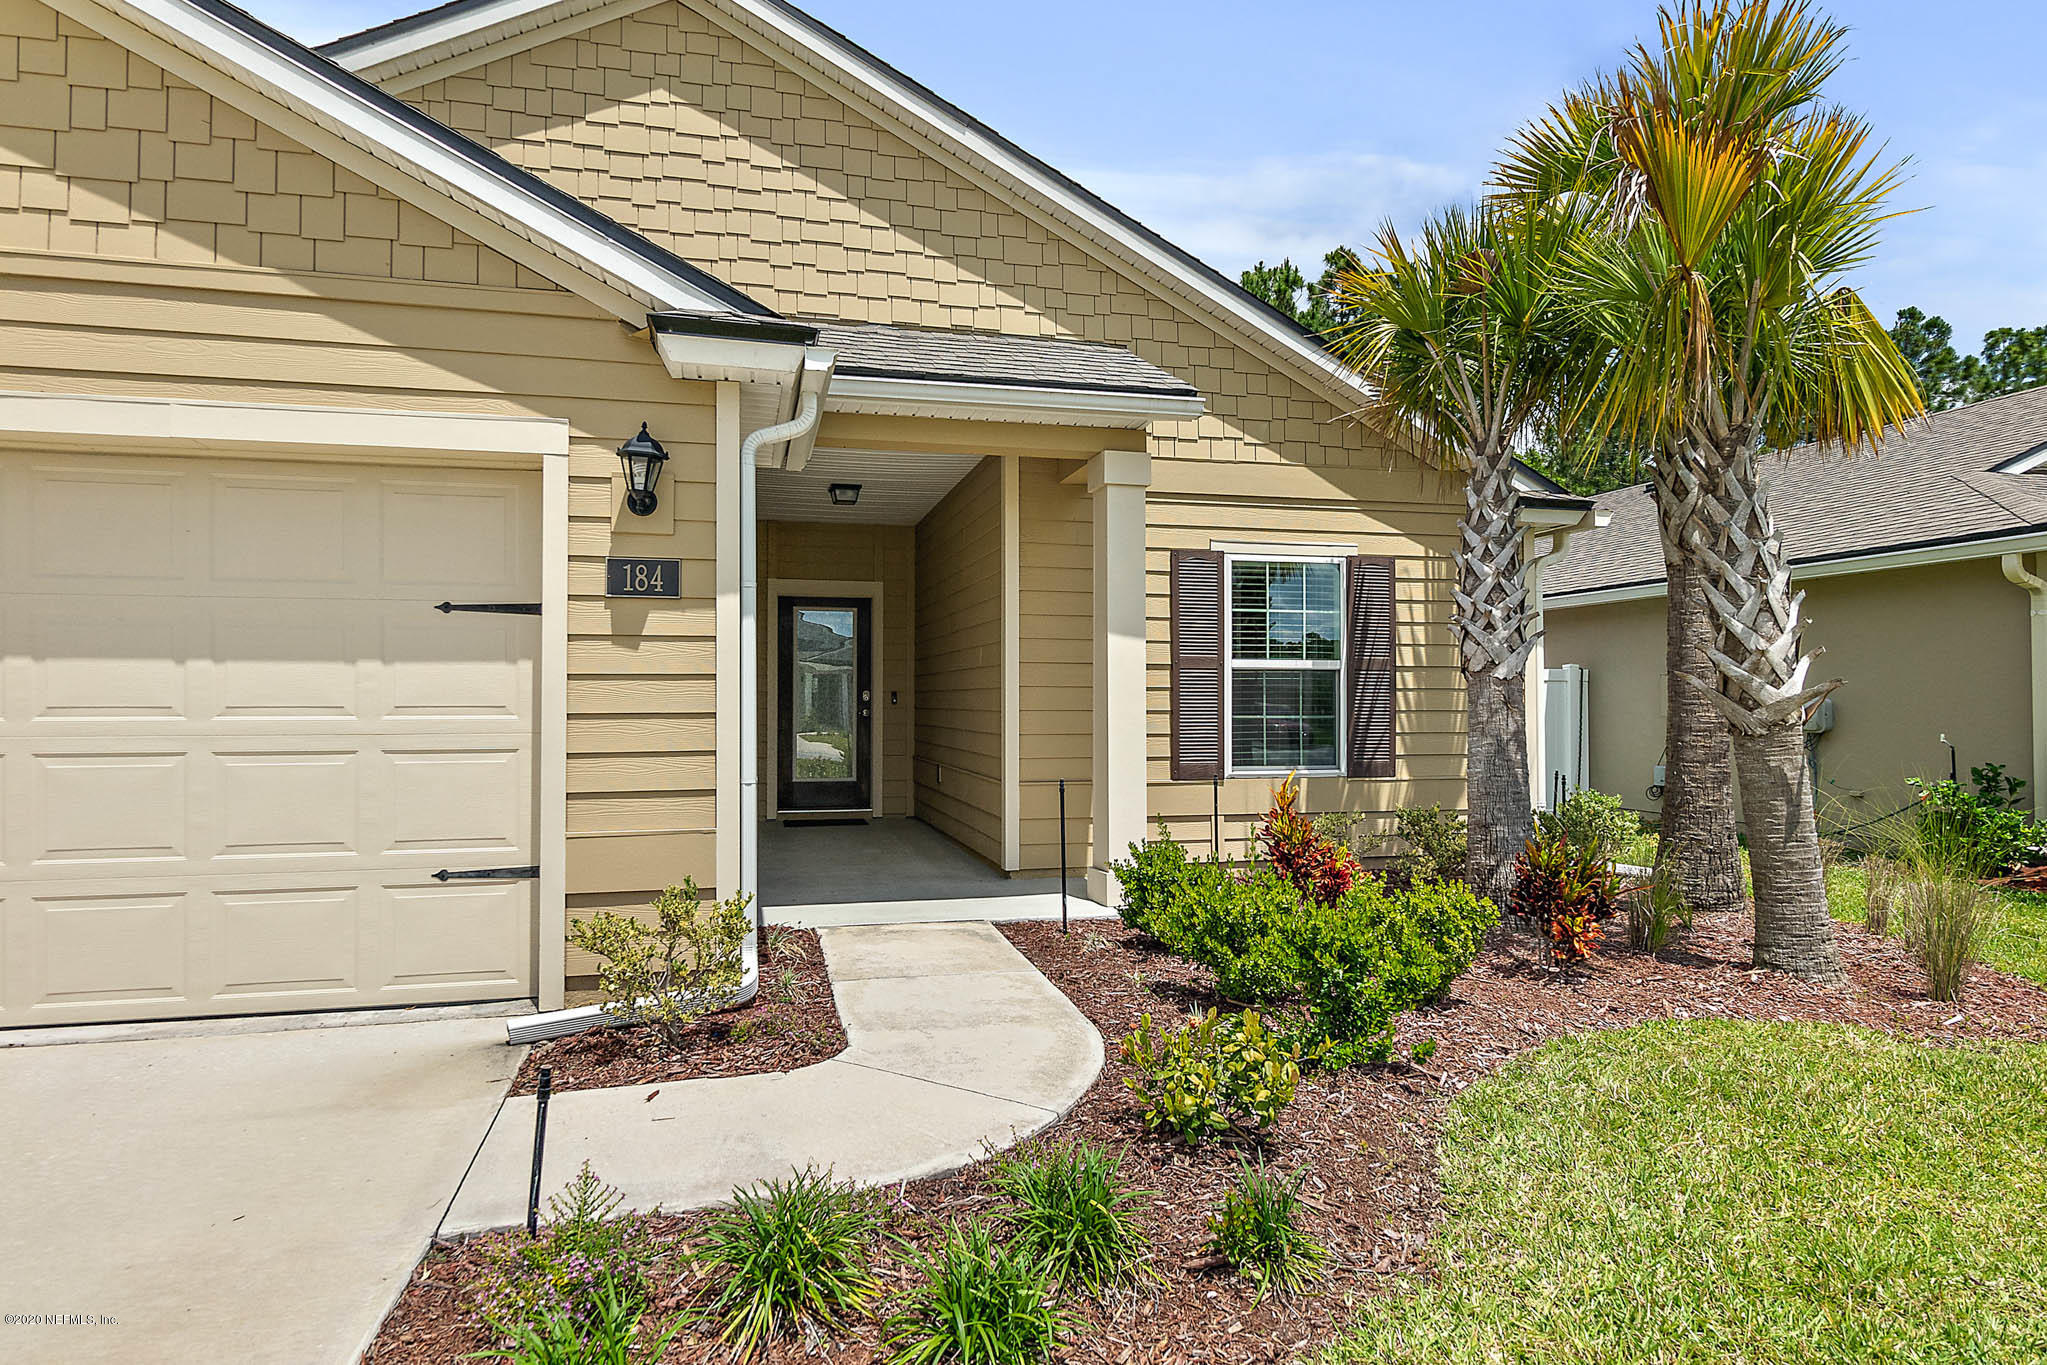 184 PALACE, ST AUGUSTINE, FLORIDA 32084, 3 Bedrooms Bedrooms, ,2 BathroomsBathrooms,Residential,For sale,PALACE,1053201